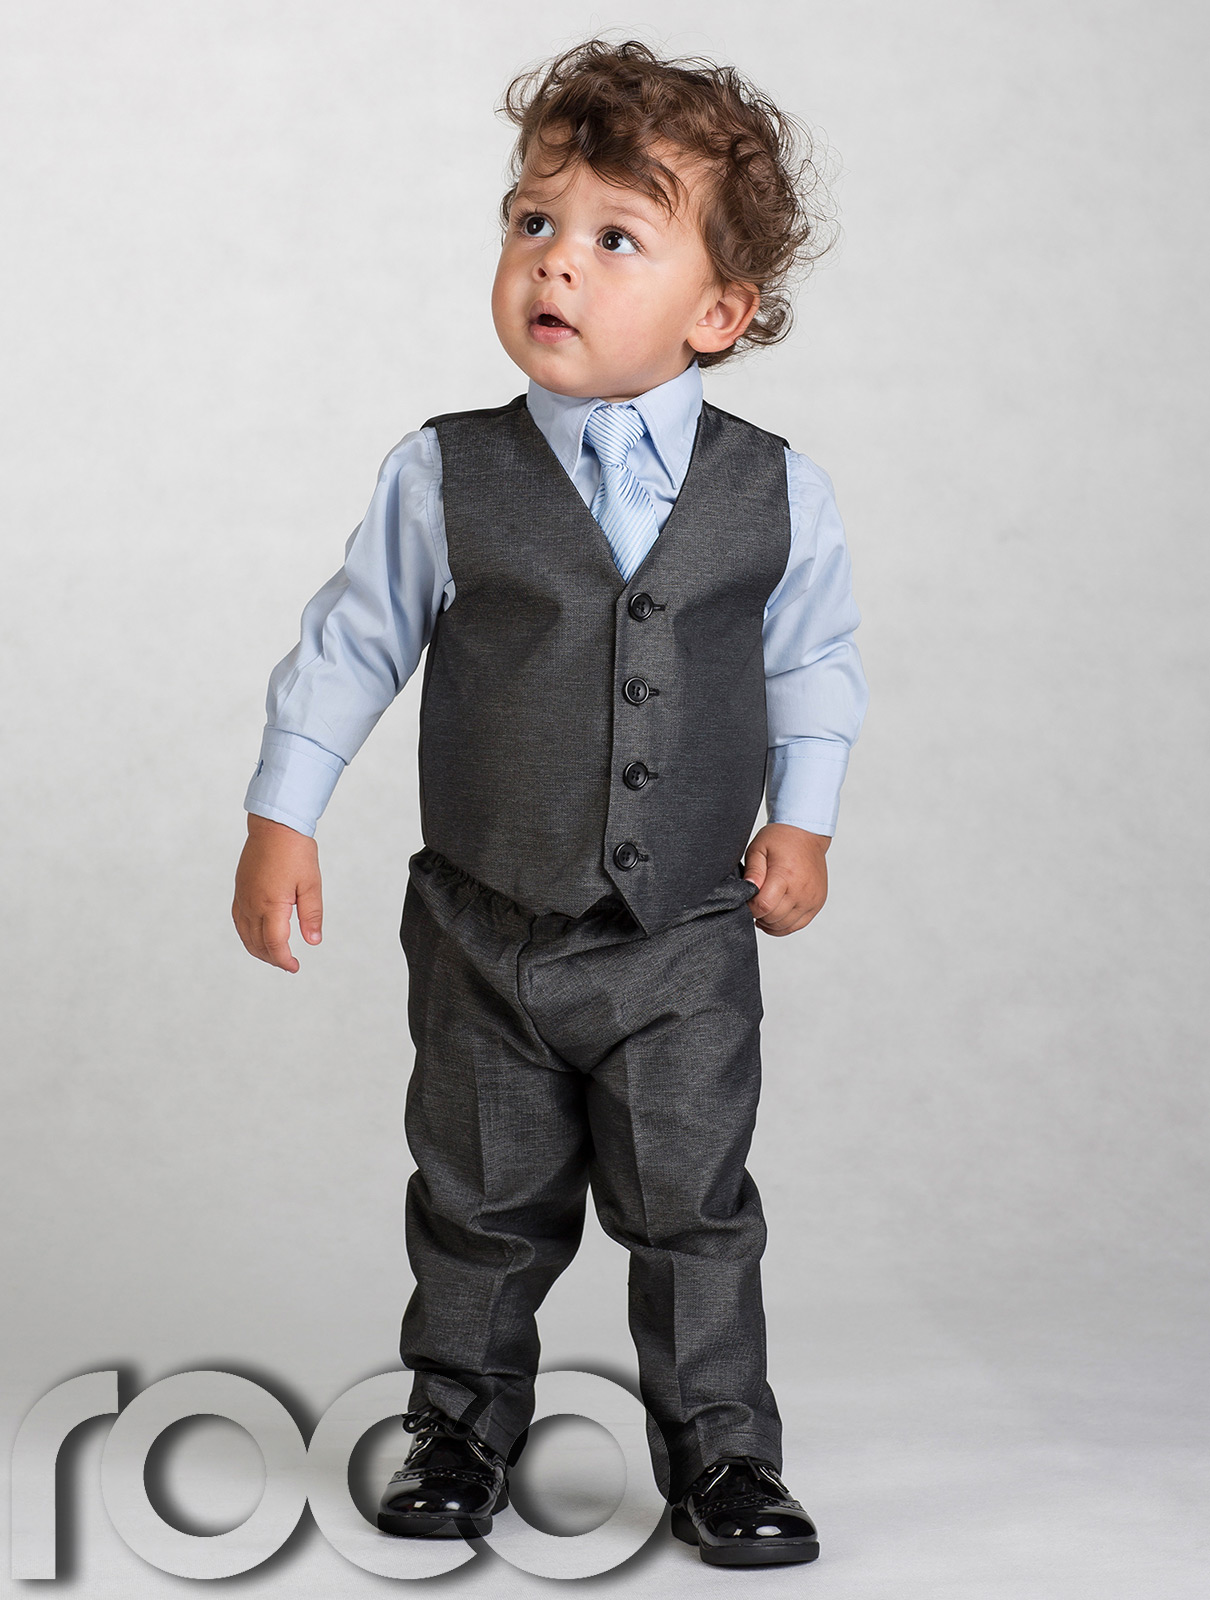 Boys Wedding Tuxedos. Boys Wedding tuxedos have traditionally been rented, however, Superb Customer Service · Money Back Guarantee · Get Huge Savings · On-Time Shipping.